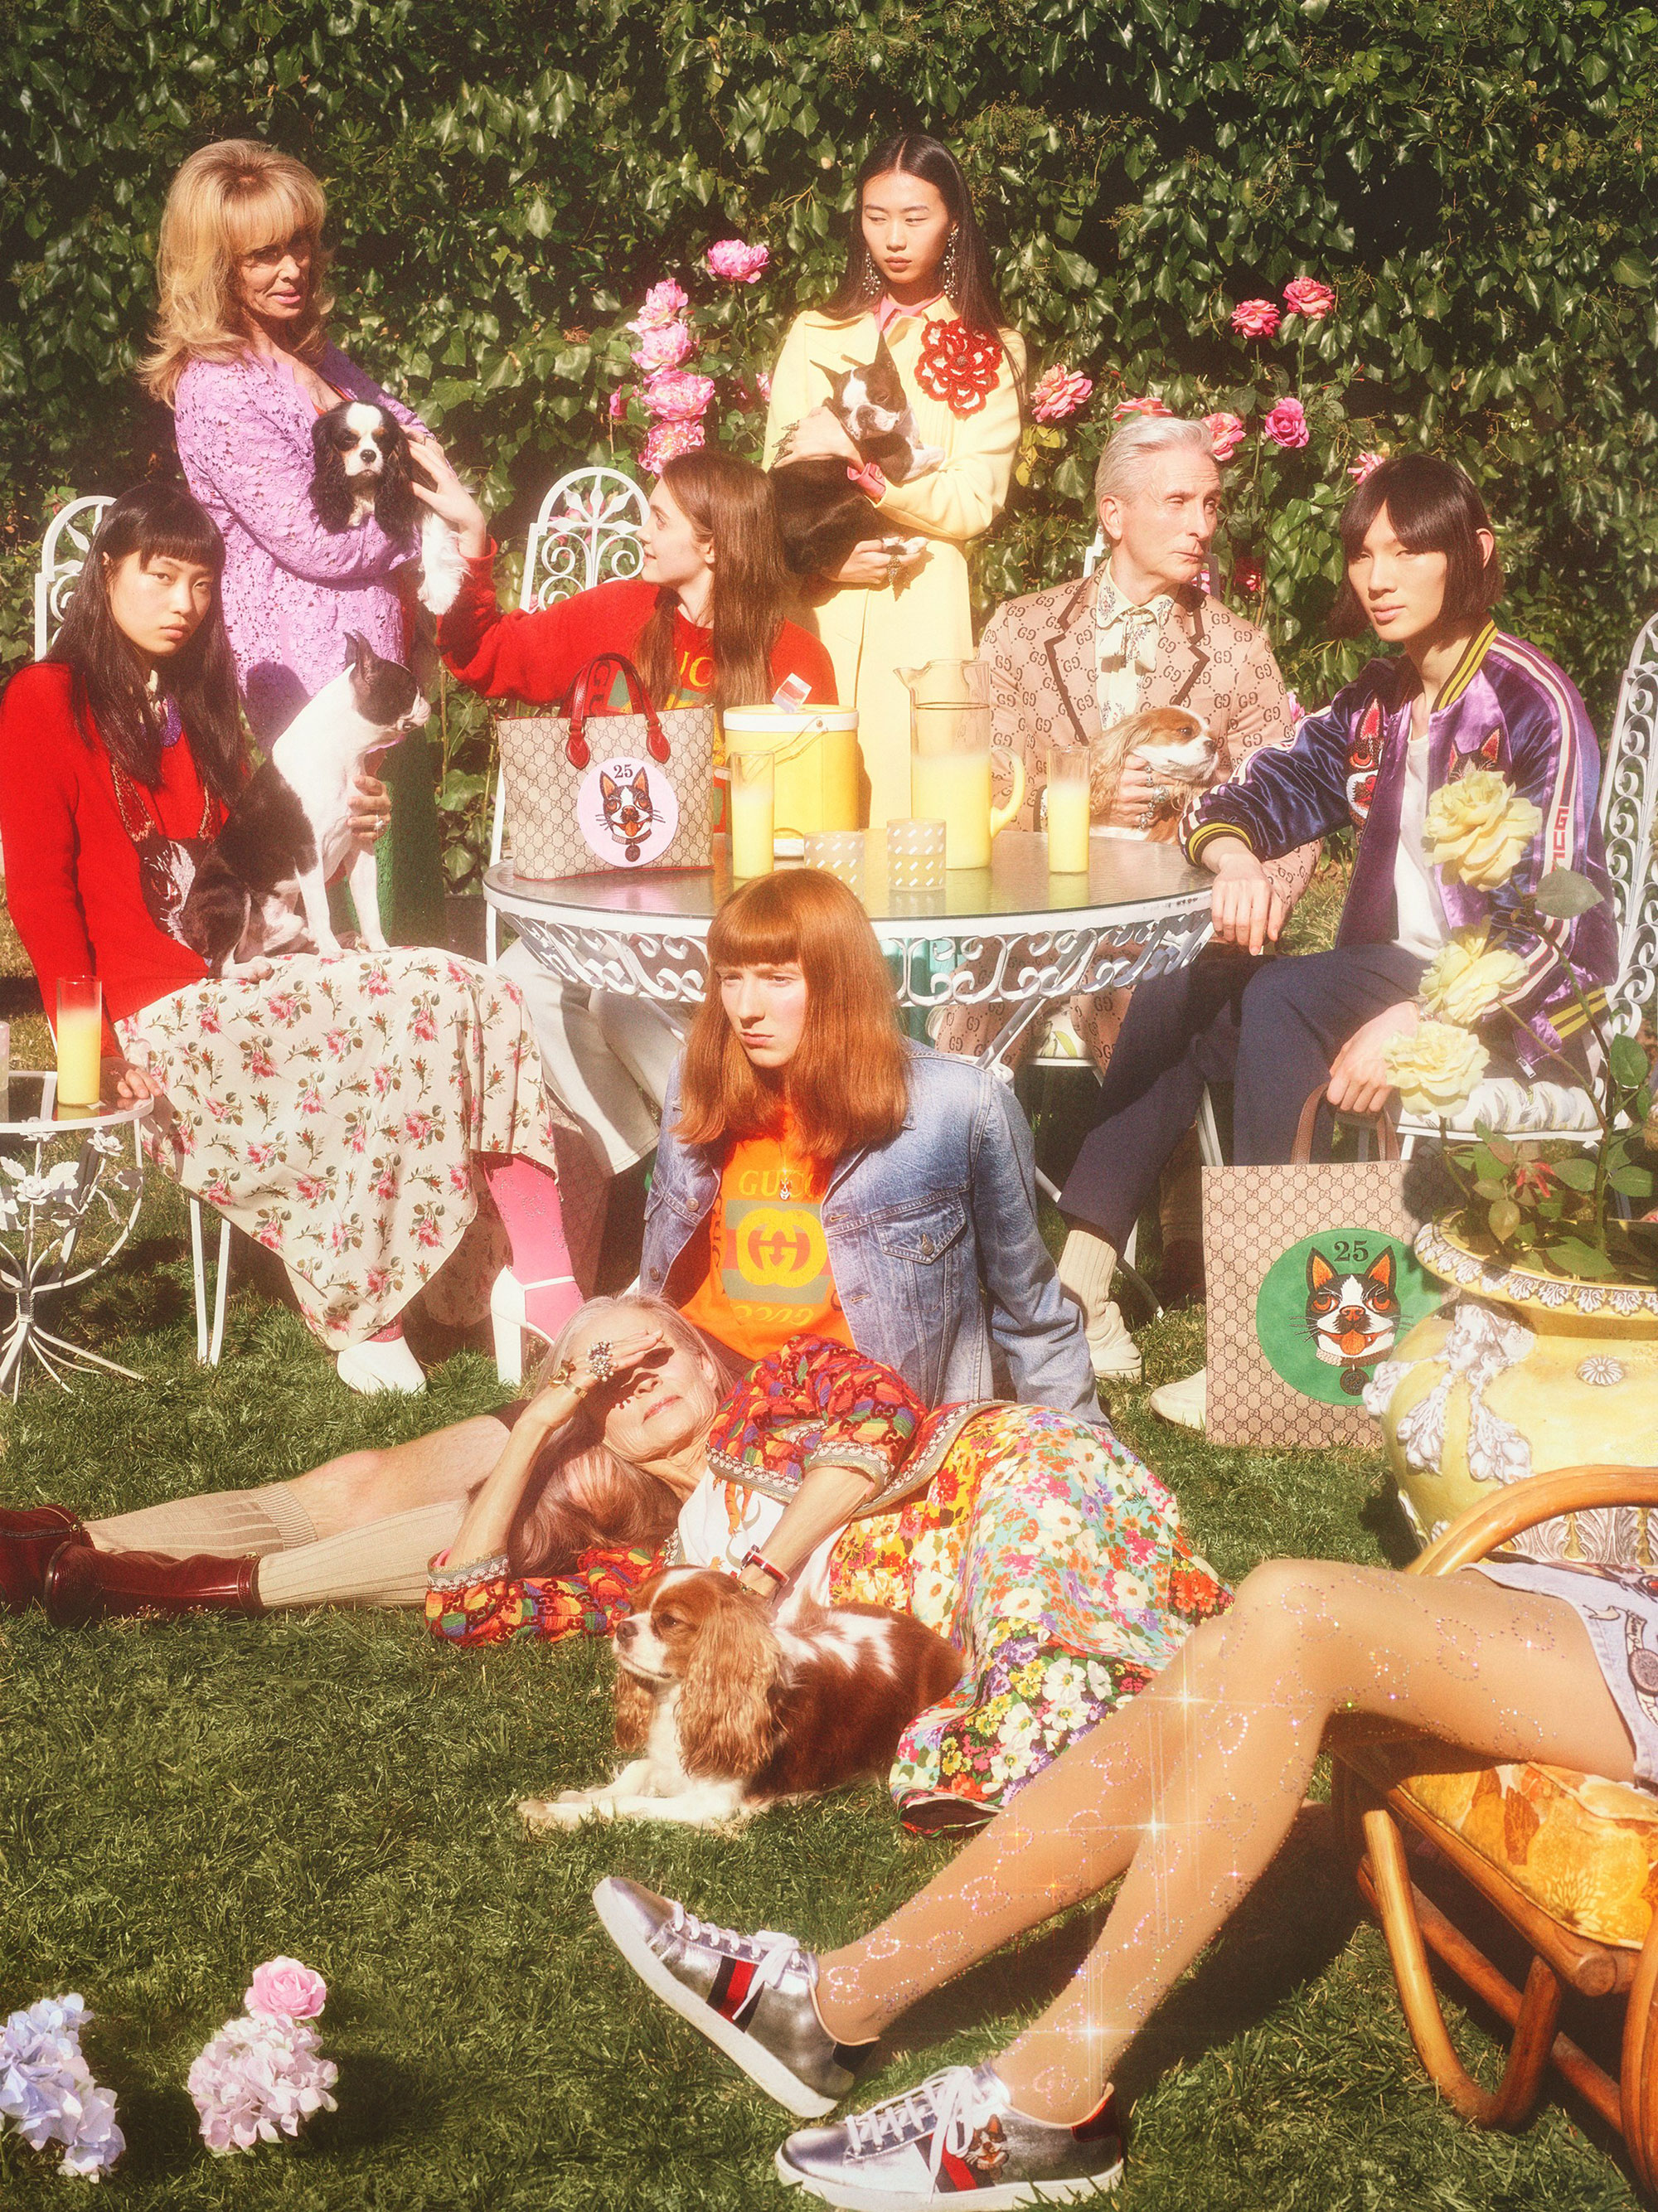 Courtesy of Gucci, Photos by Petra Collins